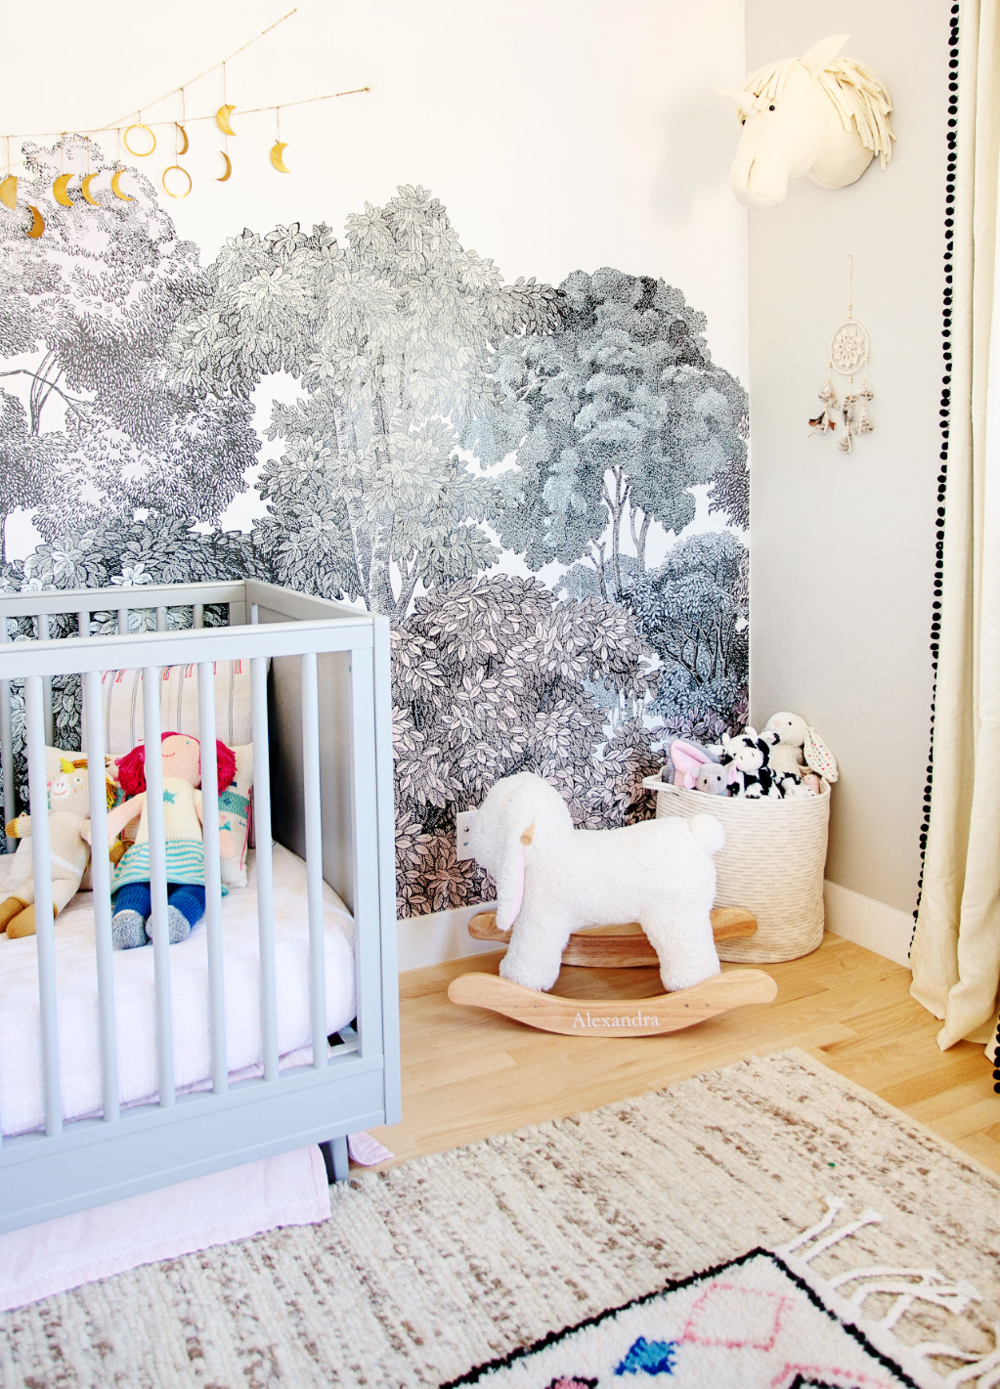 Veneer Designs  creates a whimsical baby girl nursery in true Boho baby style with the woodland wall mural, the layered rugs, moon garland and plenty of storage for toys and stuffies.